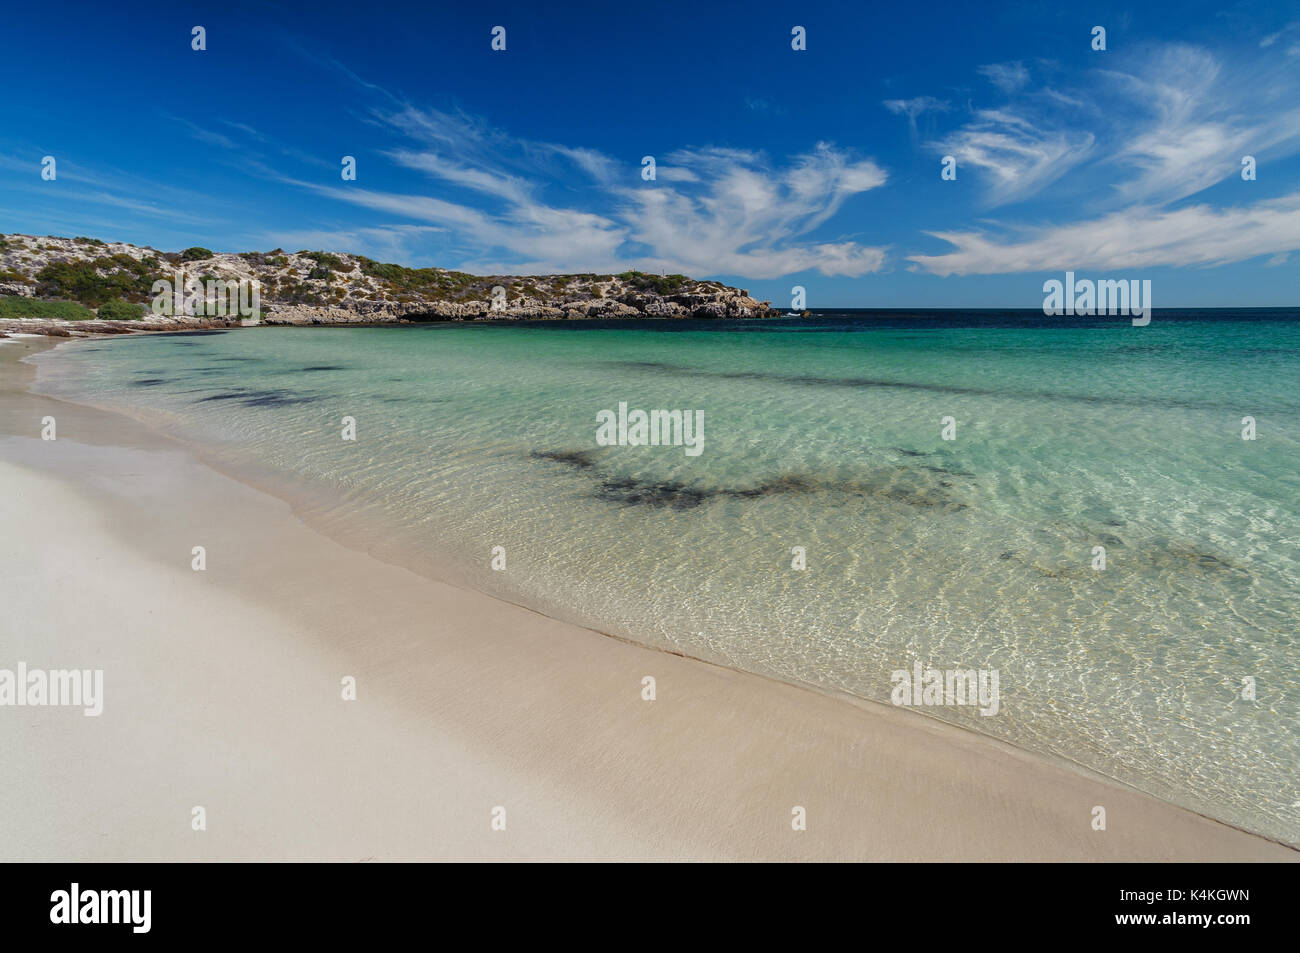 Turquoise water at Dynamite Bay. - Stock Image